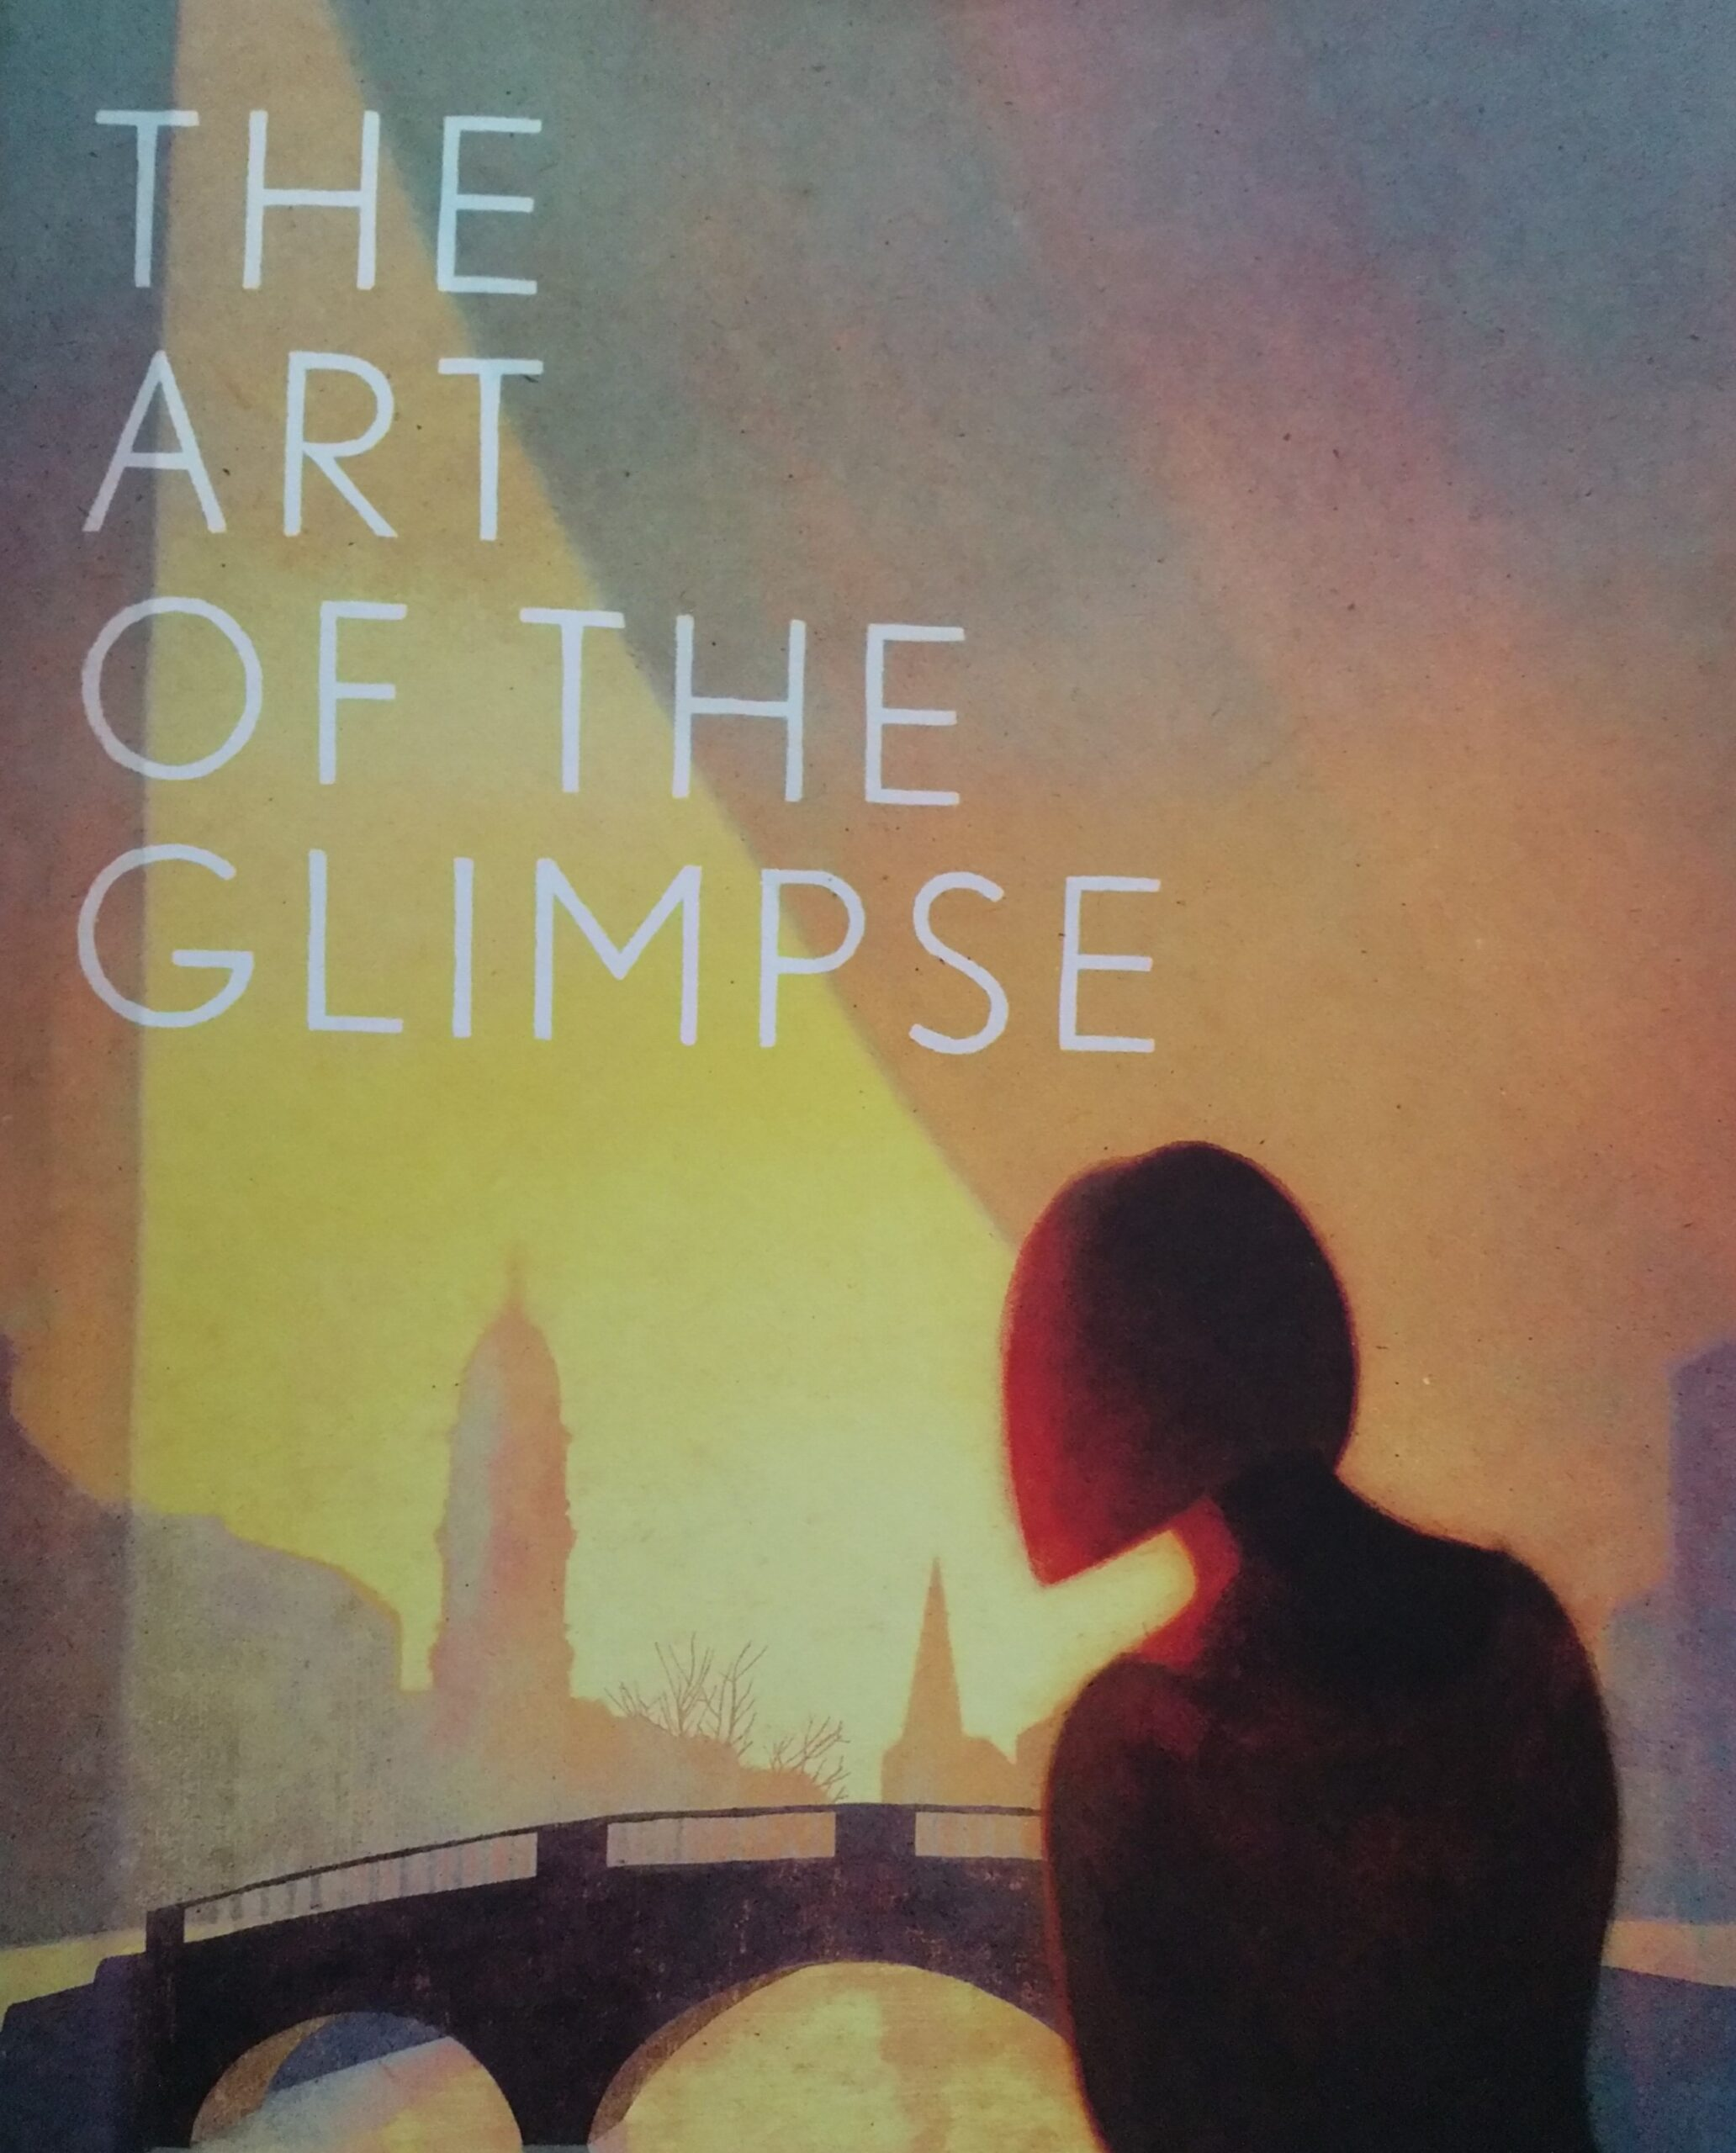 Book Shop Day thread: The Art of the Glimpse